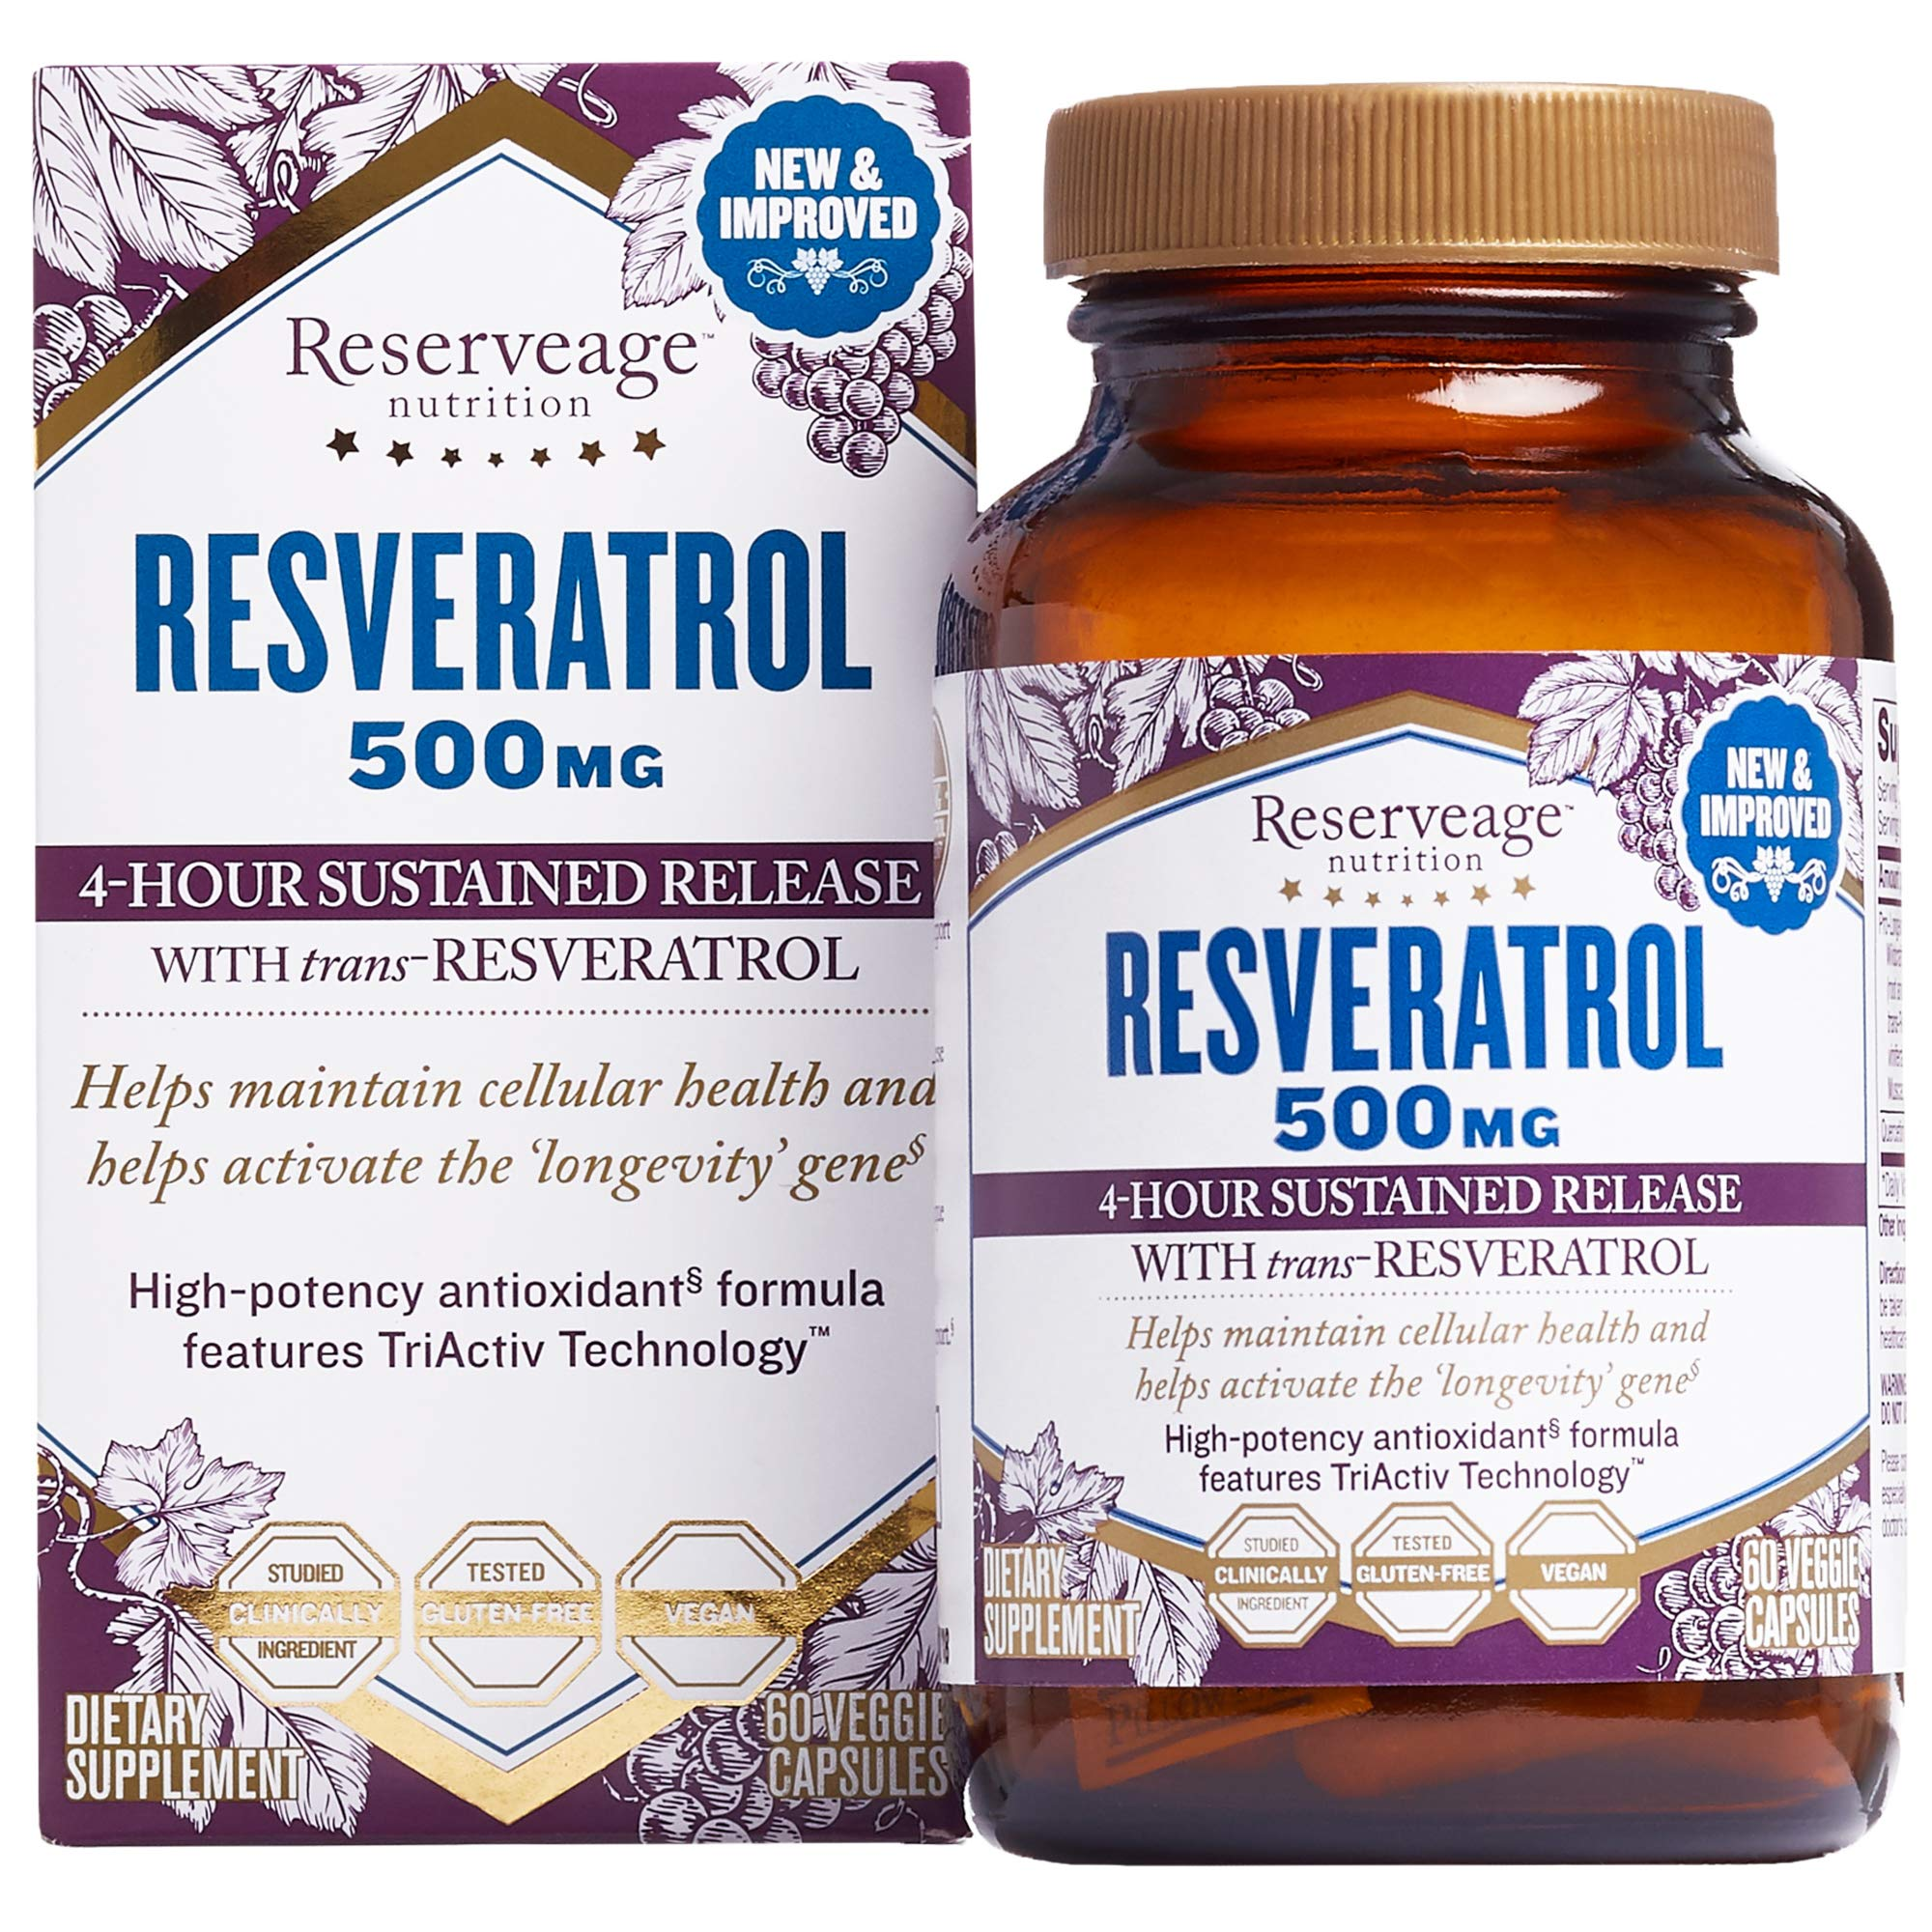 Reserveage, Resveratrol 500 mg, Antioxidant Supplement for Heart and Cellular Health, Supports Healthy Aging, Paleo, Keto, 60 capsules (60 servings) by Reserveage Nutrition